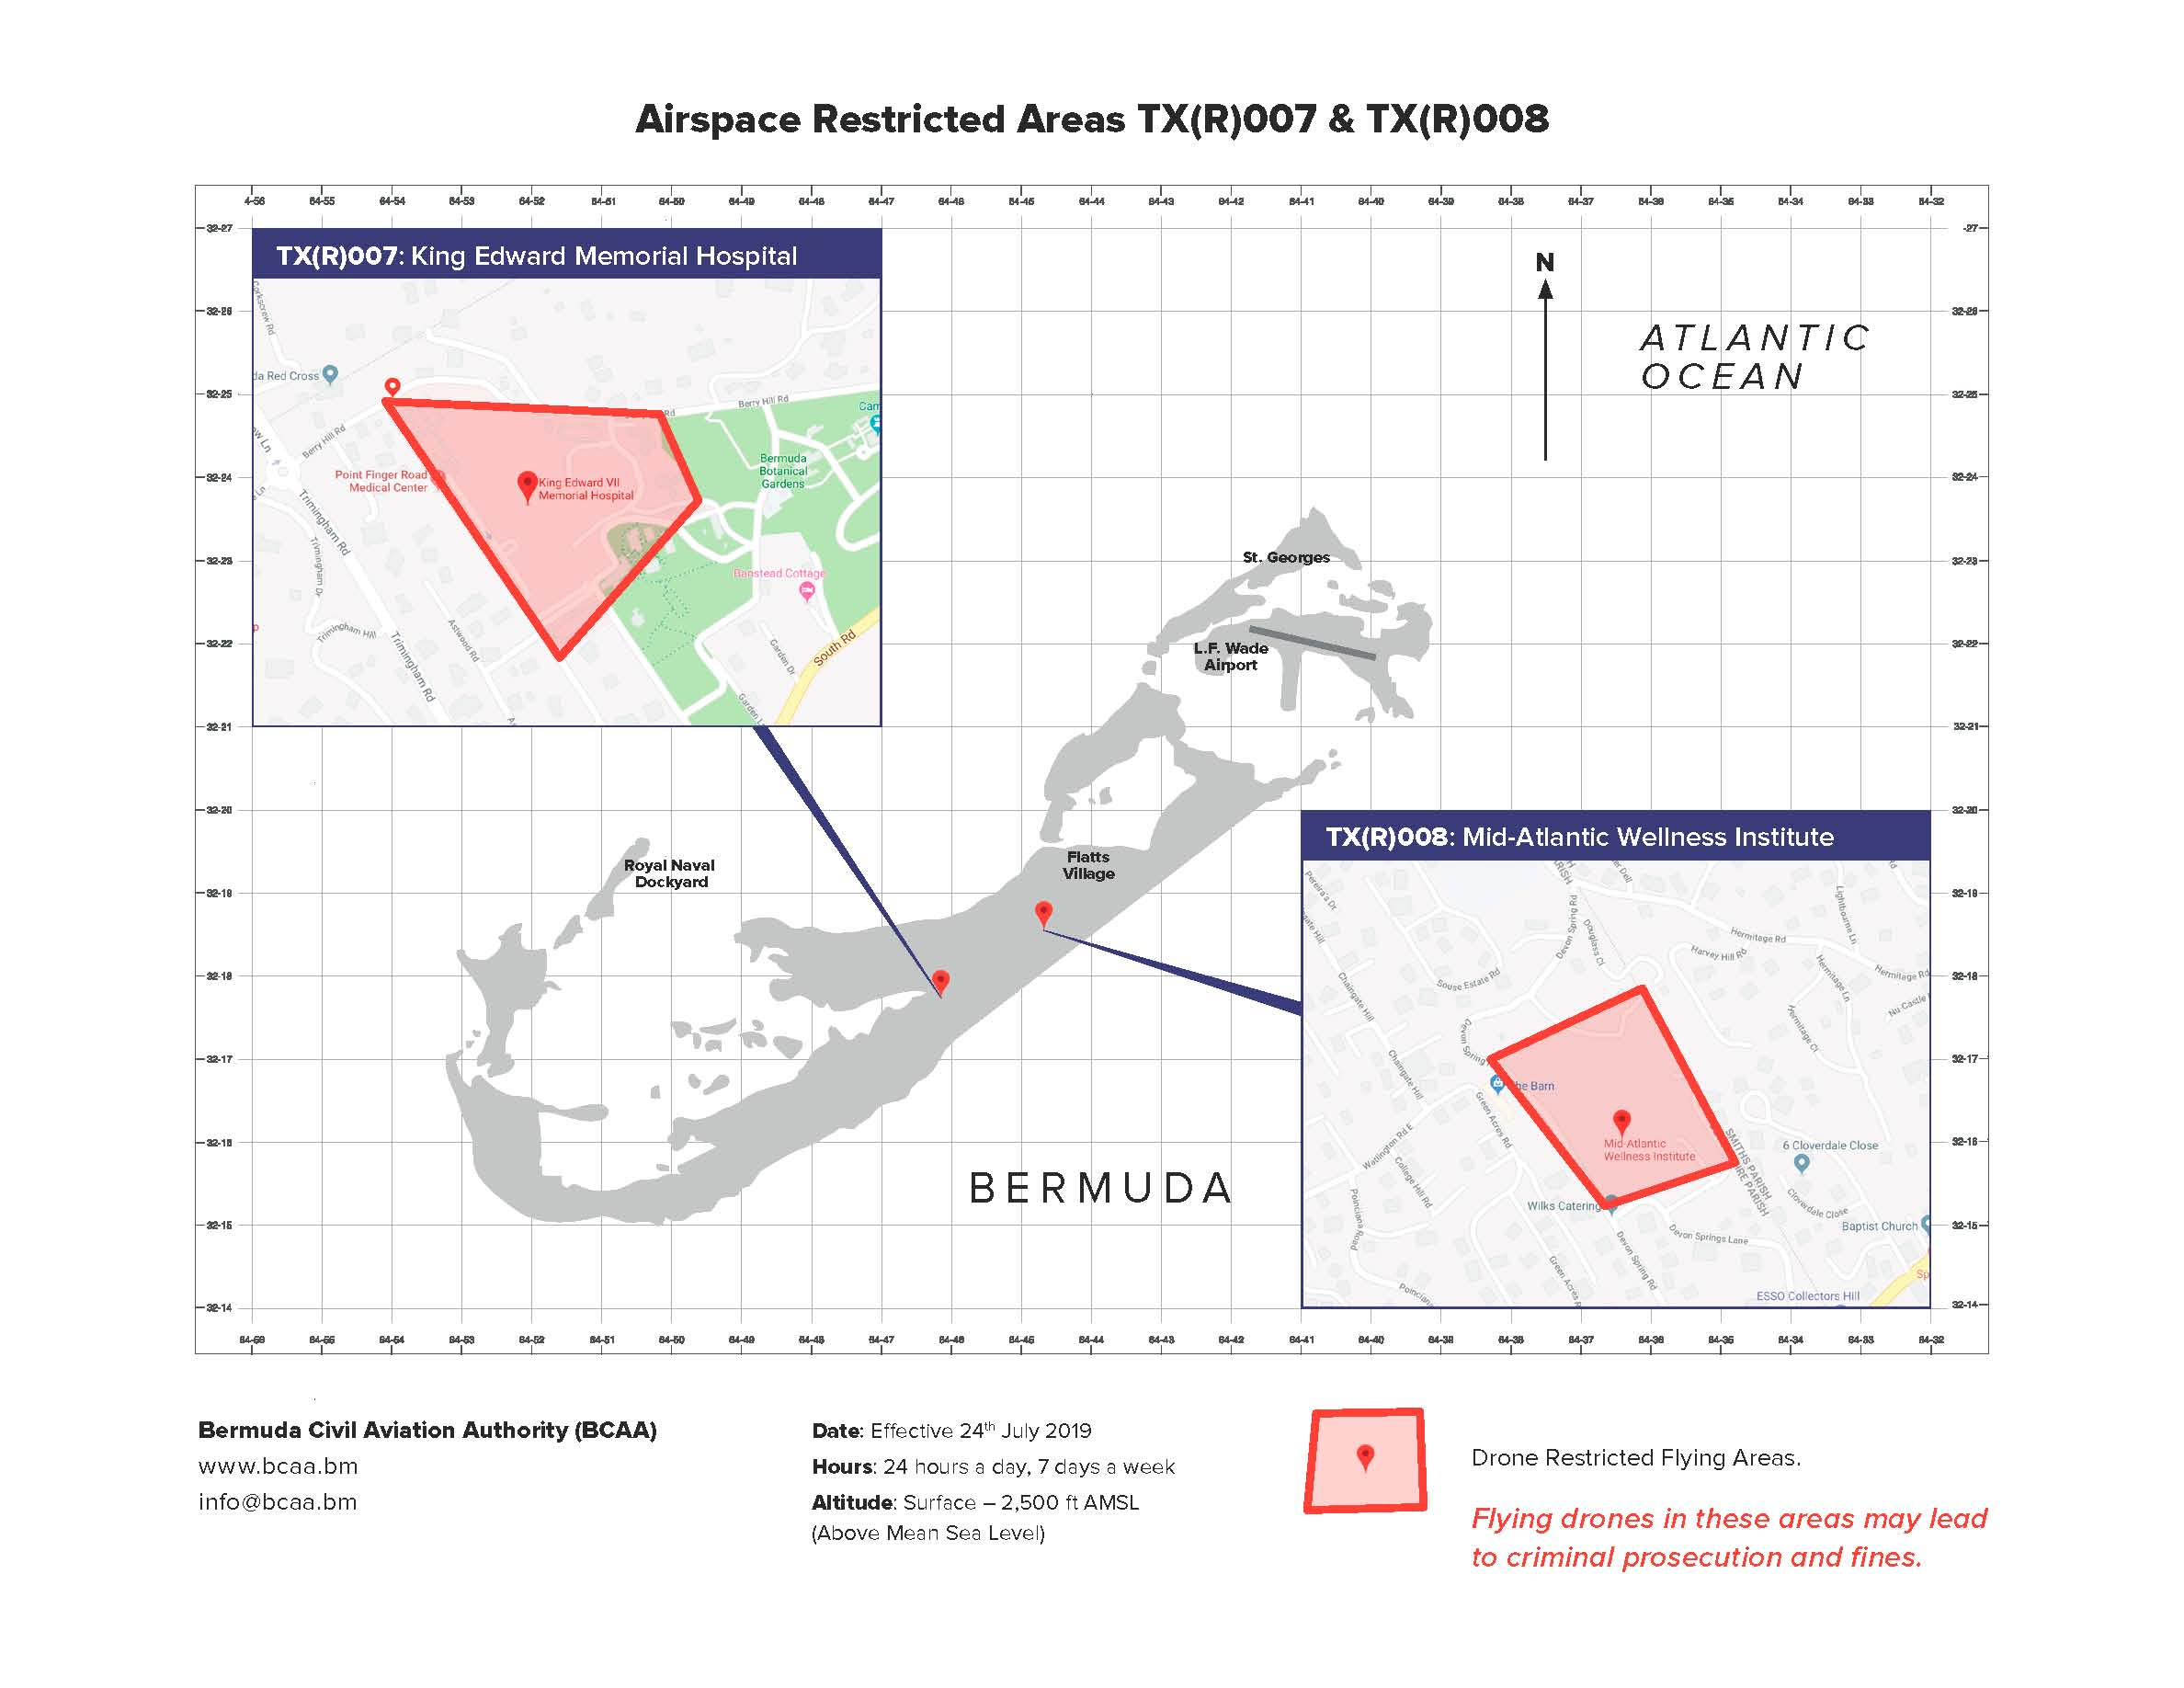 BCAA Drone No-Fly Zone Map Bermuda, July 2019